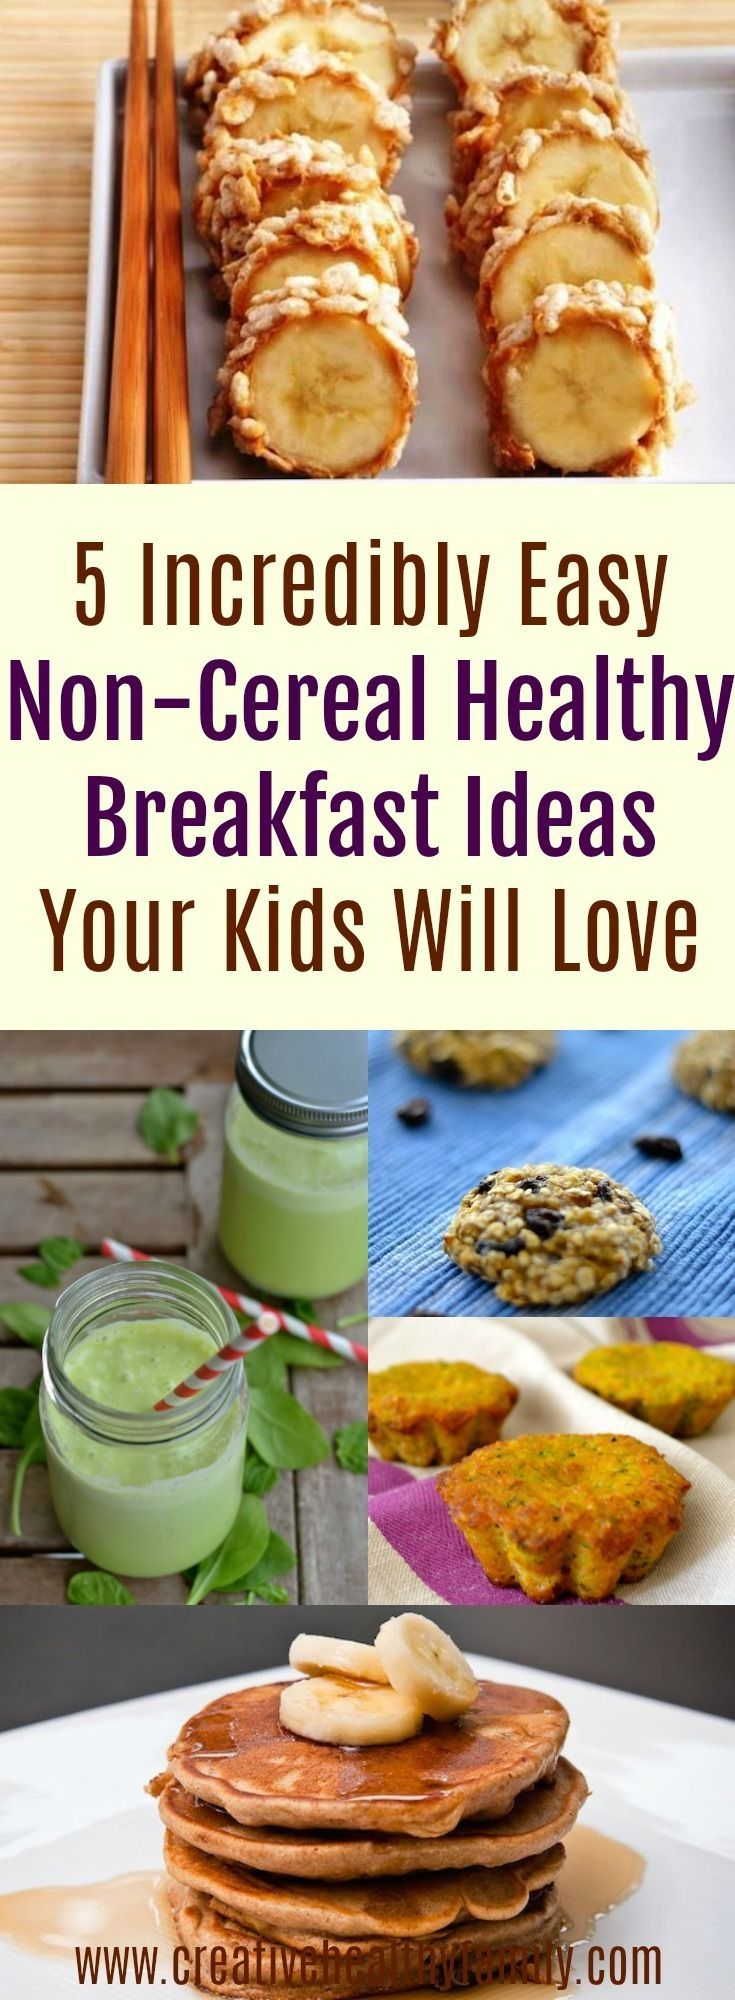 Do you want creative and healthy breakfast ideas for your kids? Want to think outside the box and ditch breakfast cereals? Then, these 5 Incredibly Easy Non-Cereal Healthy Breakfast Ideas Your Kids Will Love will blow your mind! #healthy #breakfast #ideas #recipes #kids  via @creativehealthyfamily